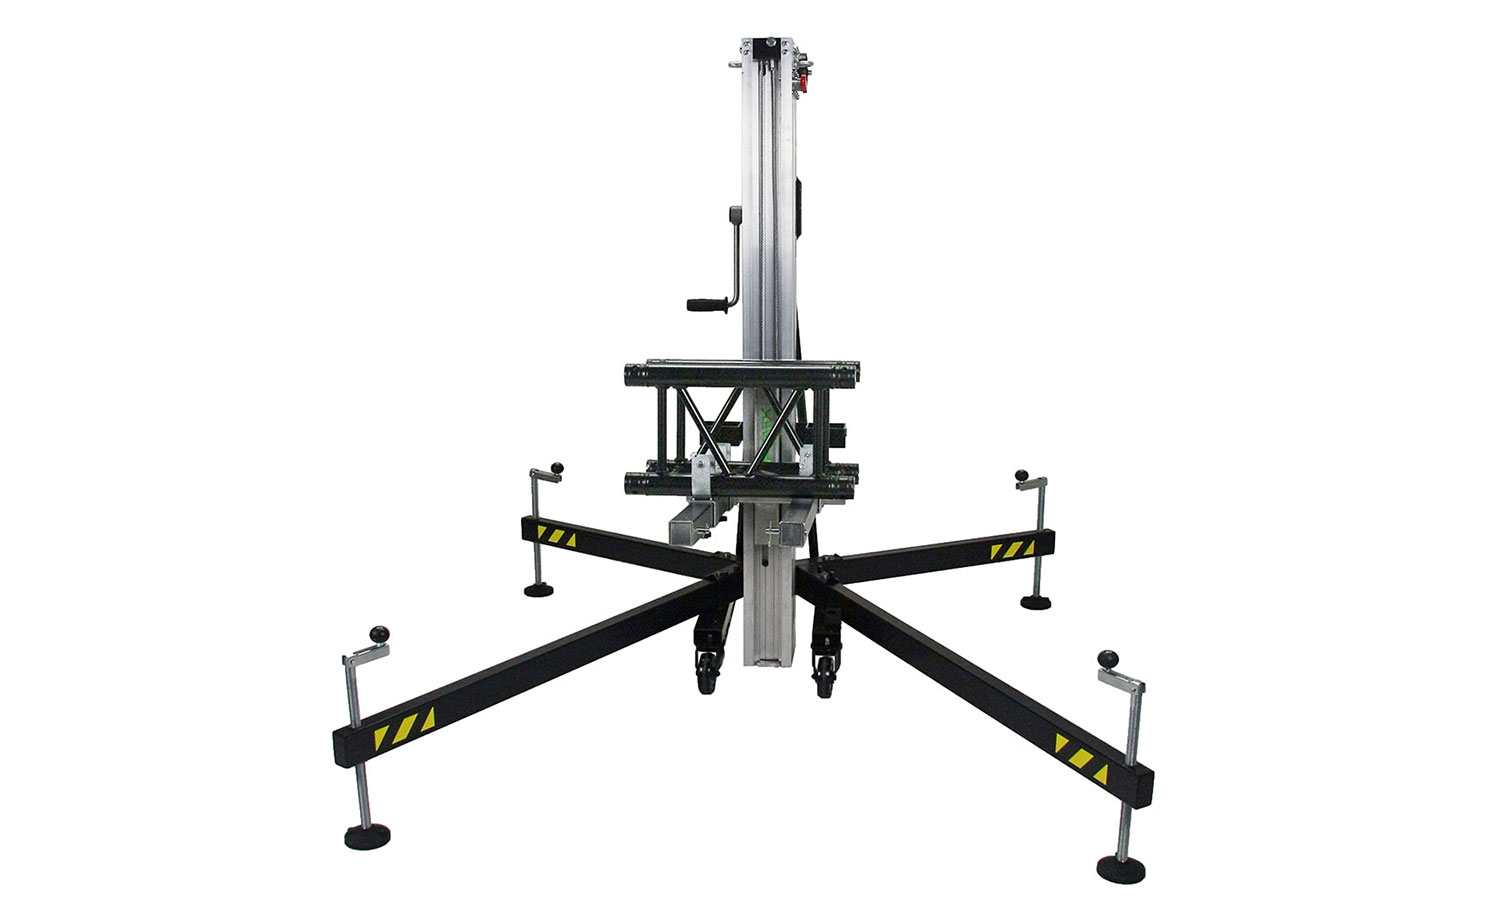 fenix-compact-line-array-lifting-tower-AT04_2